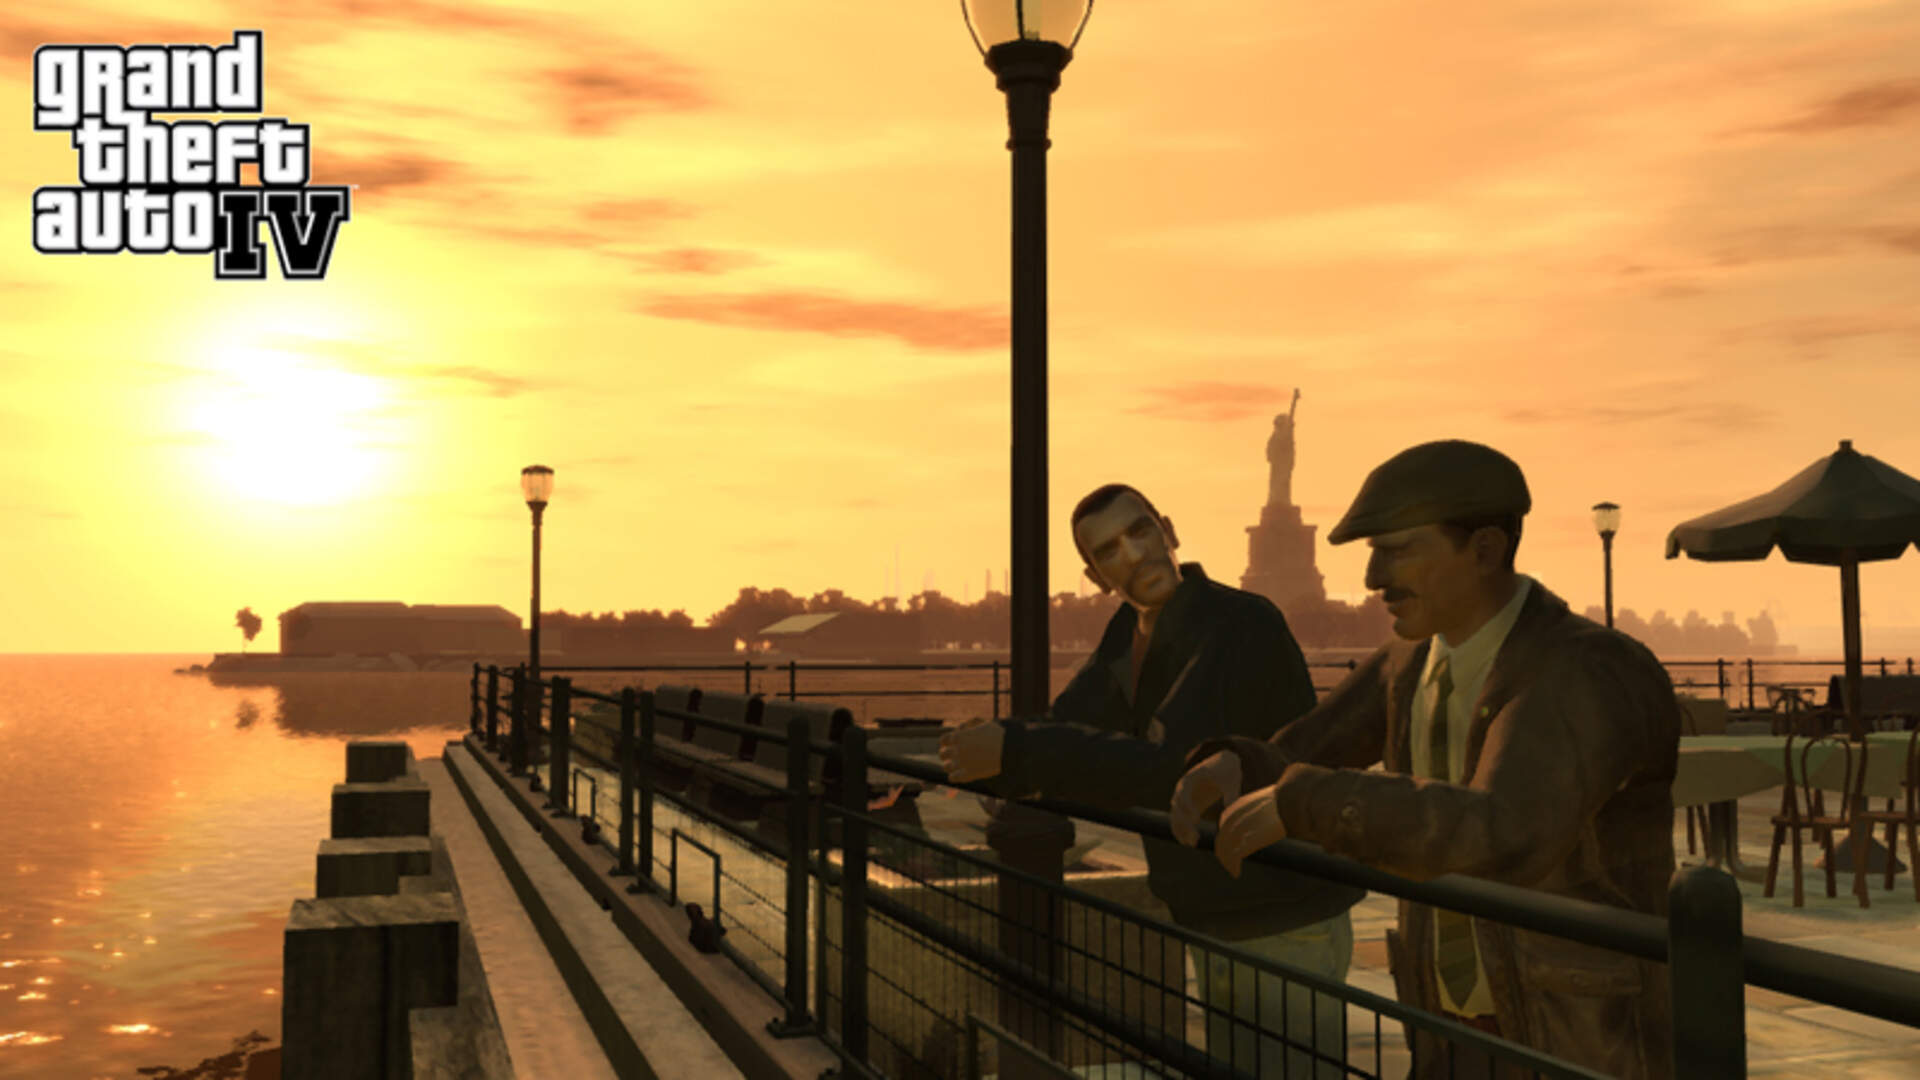 GTA 4 Cheats: Weapons, Armor, Health and More